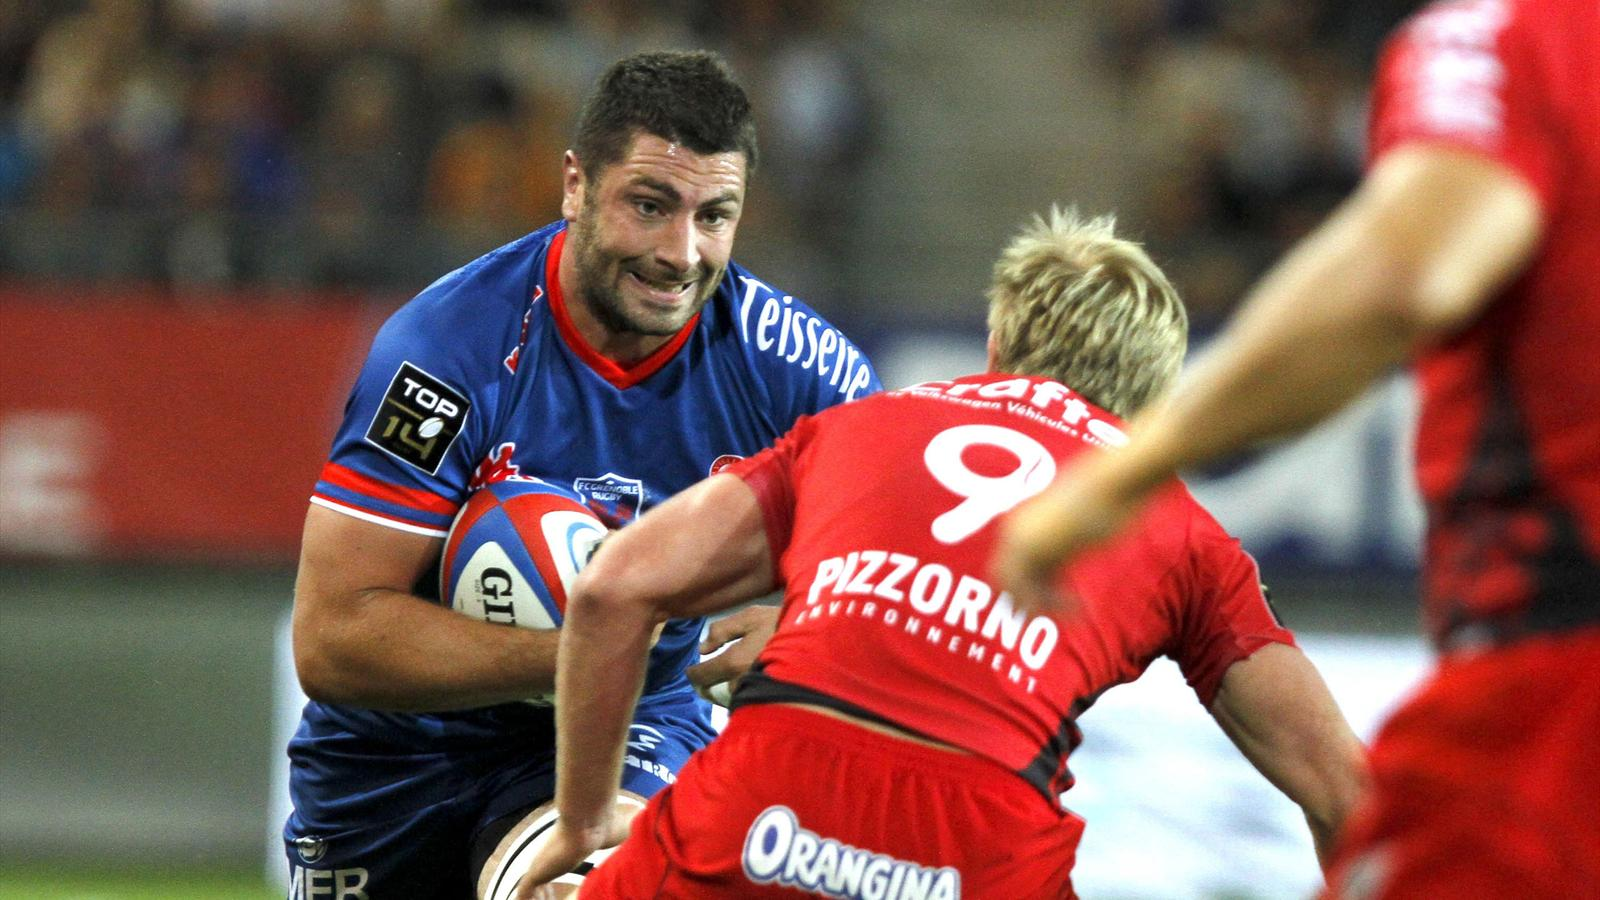 Jonathan Best against Toulon - 31 aout 2013